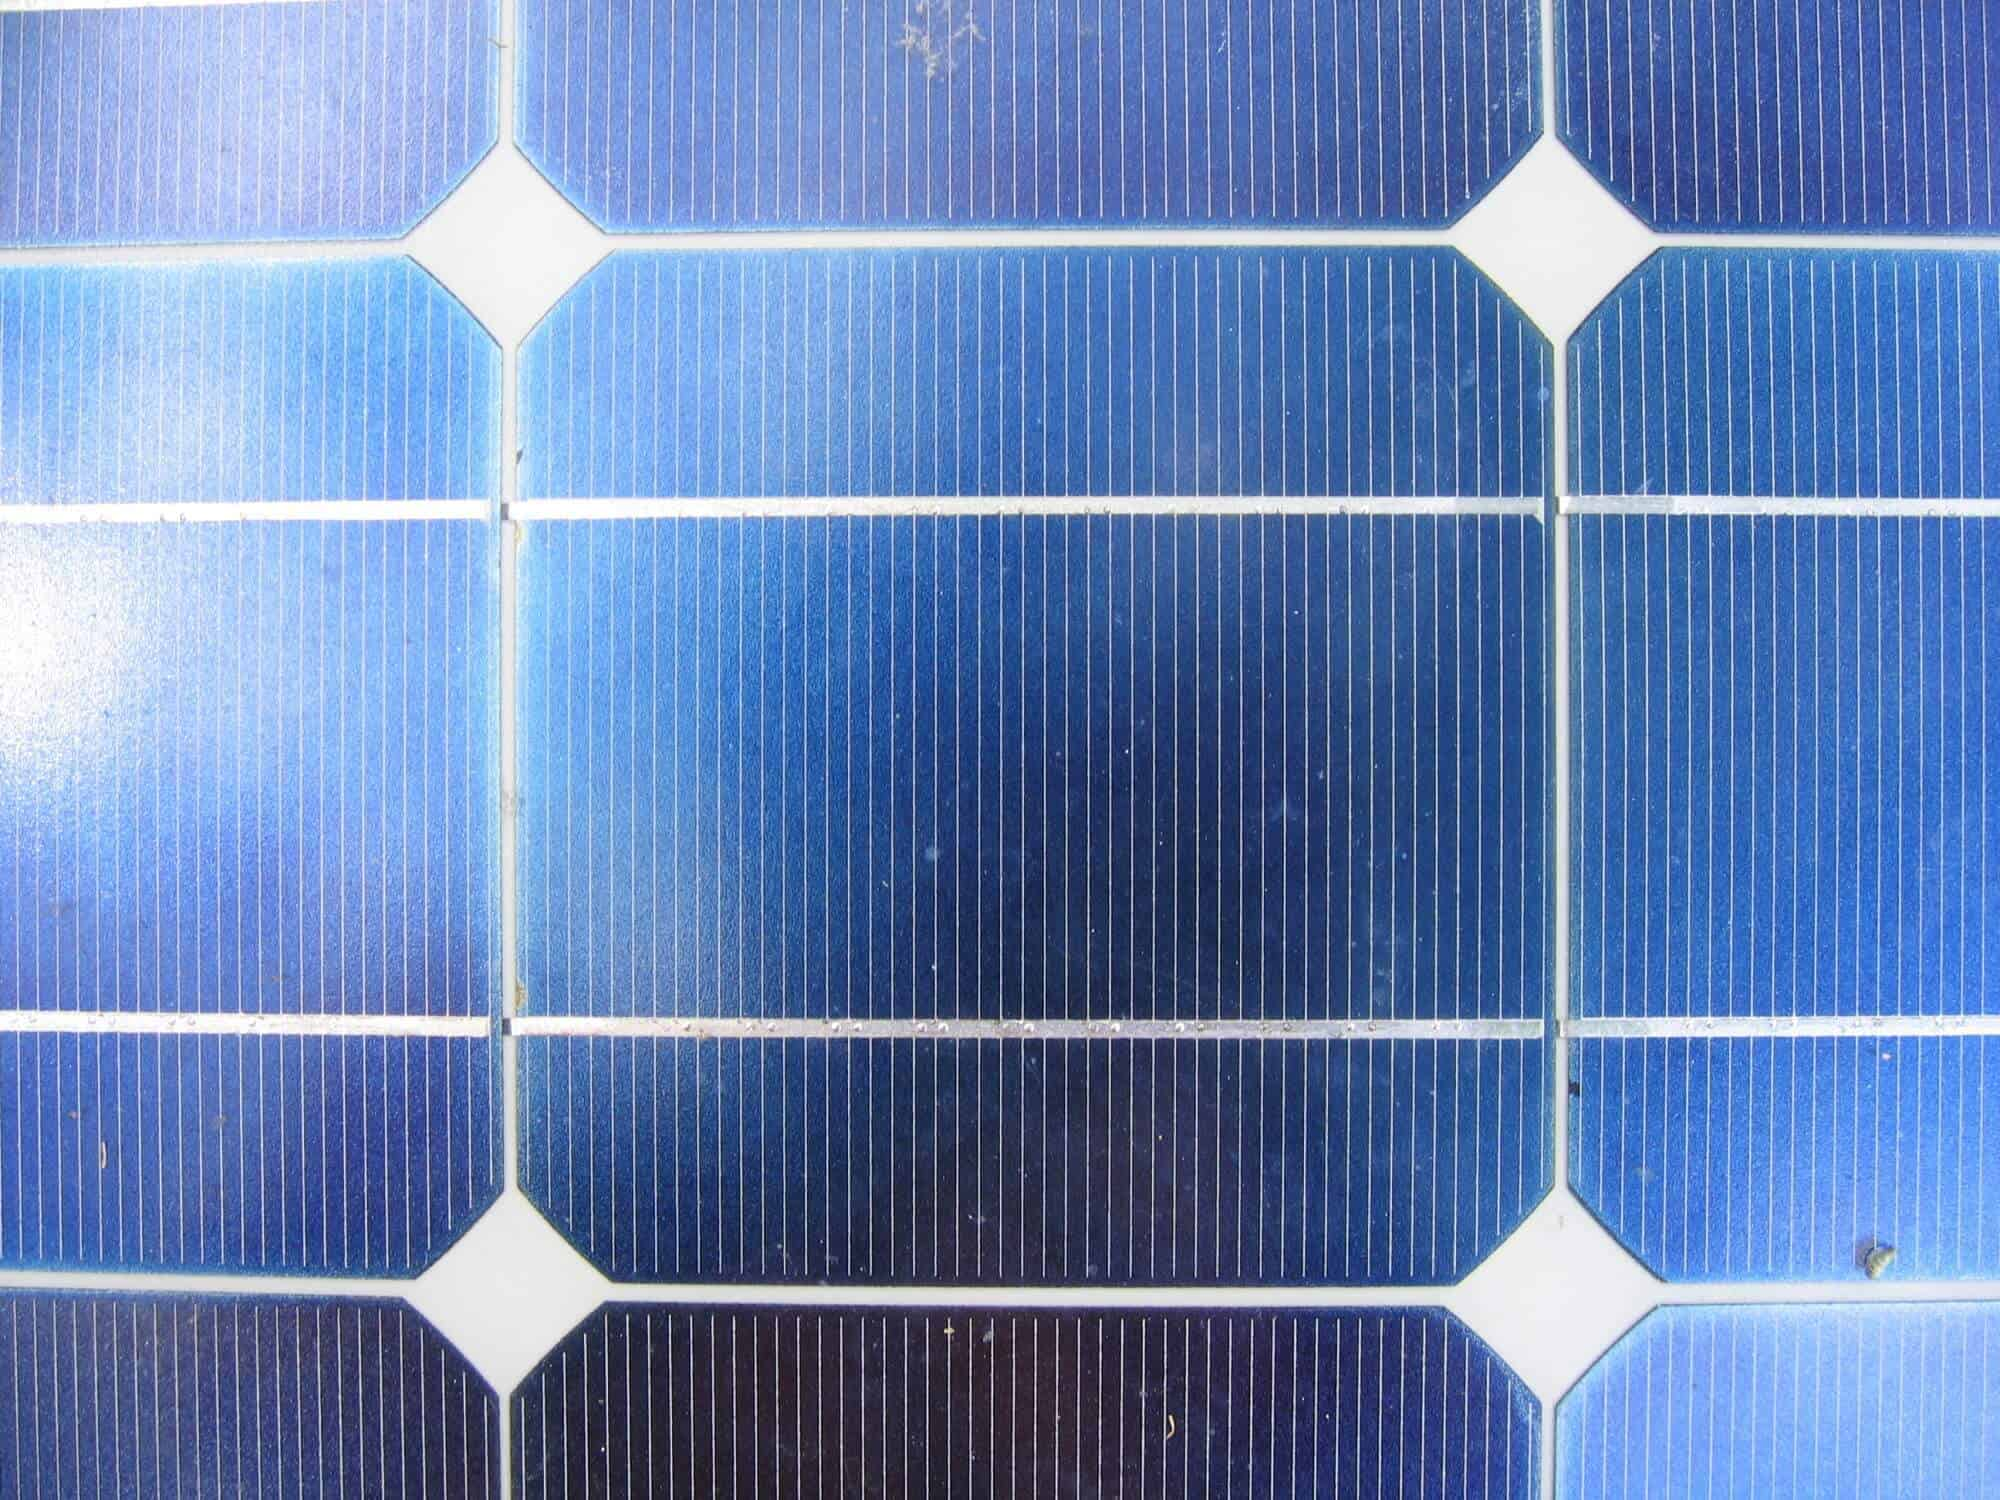 3d Printed Solar Panels The Next Step In The Renewable